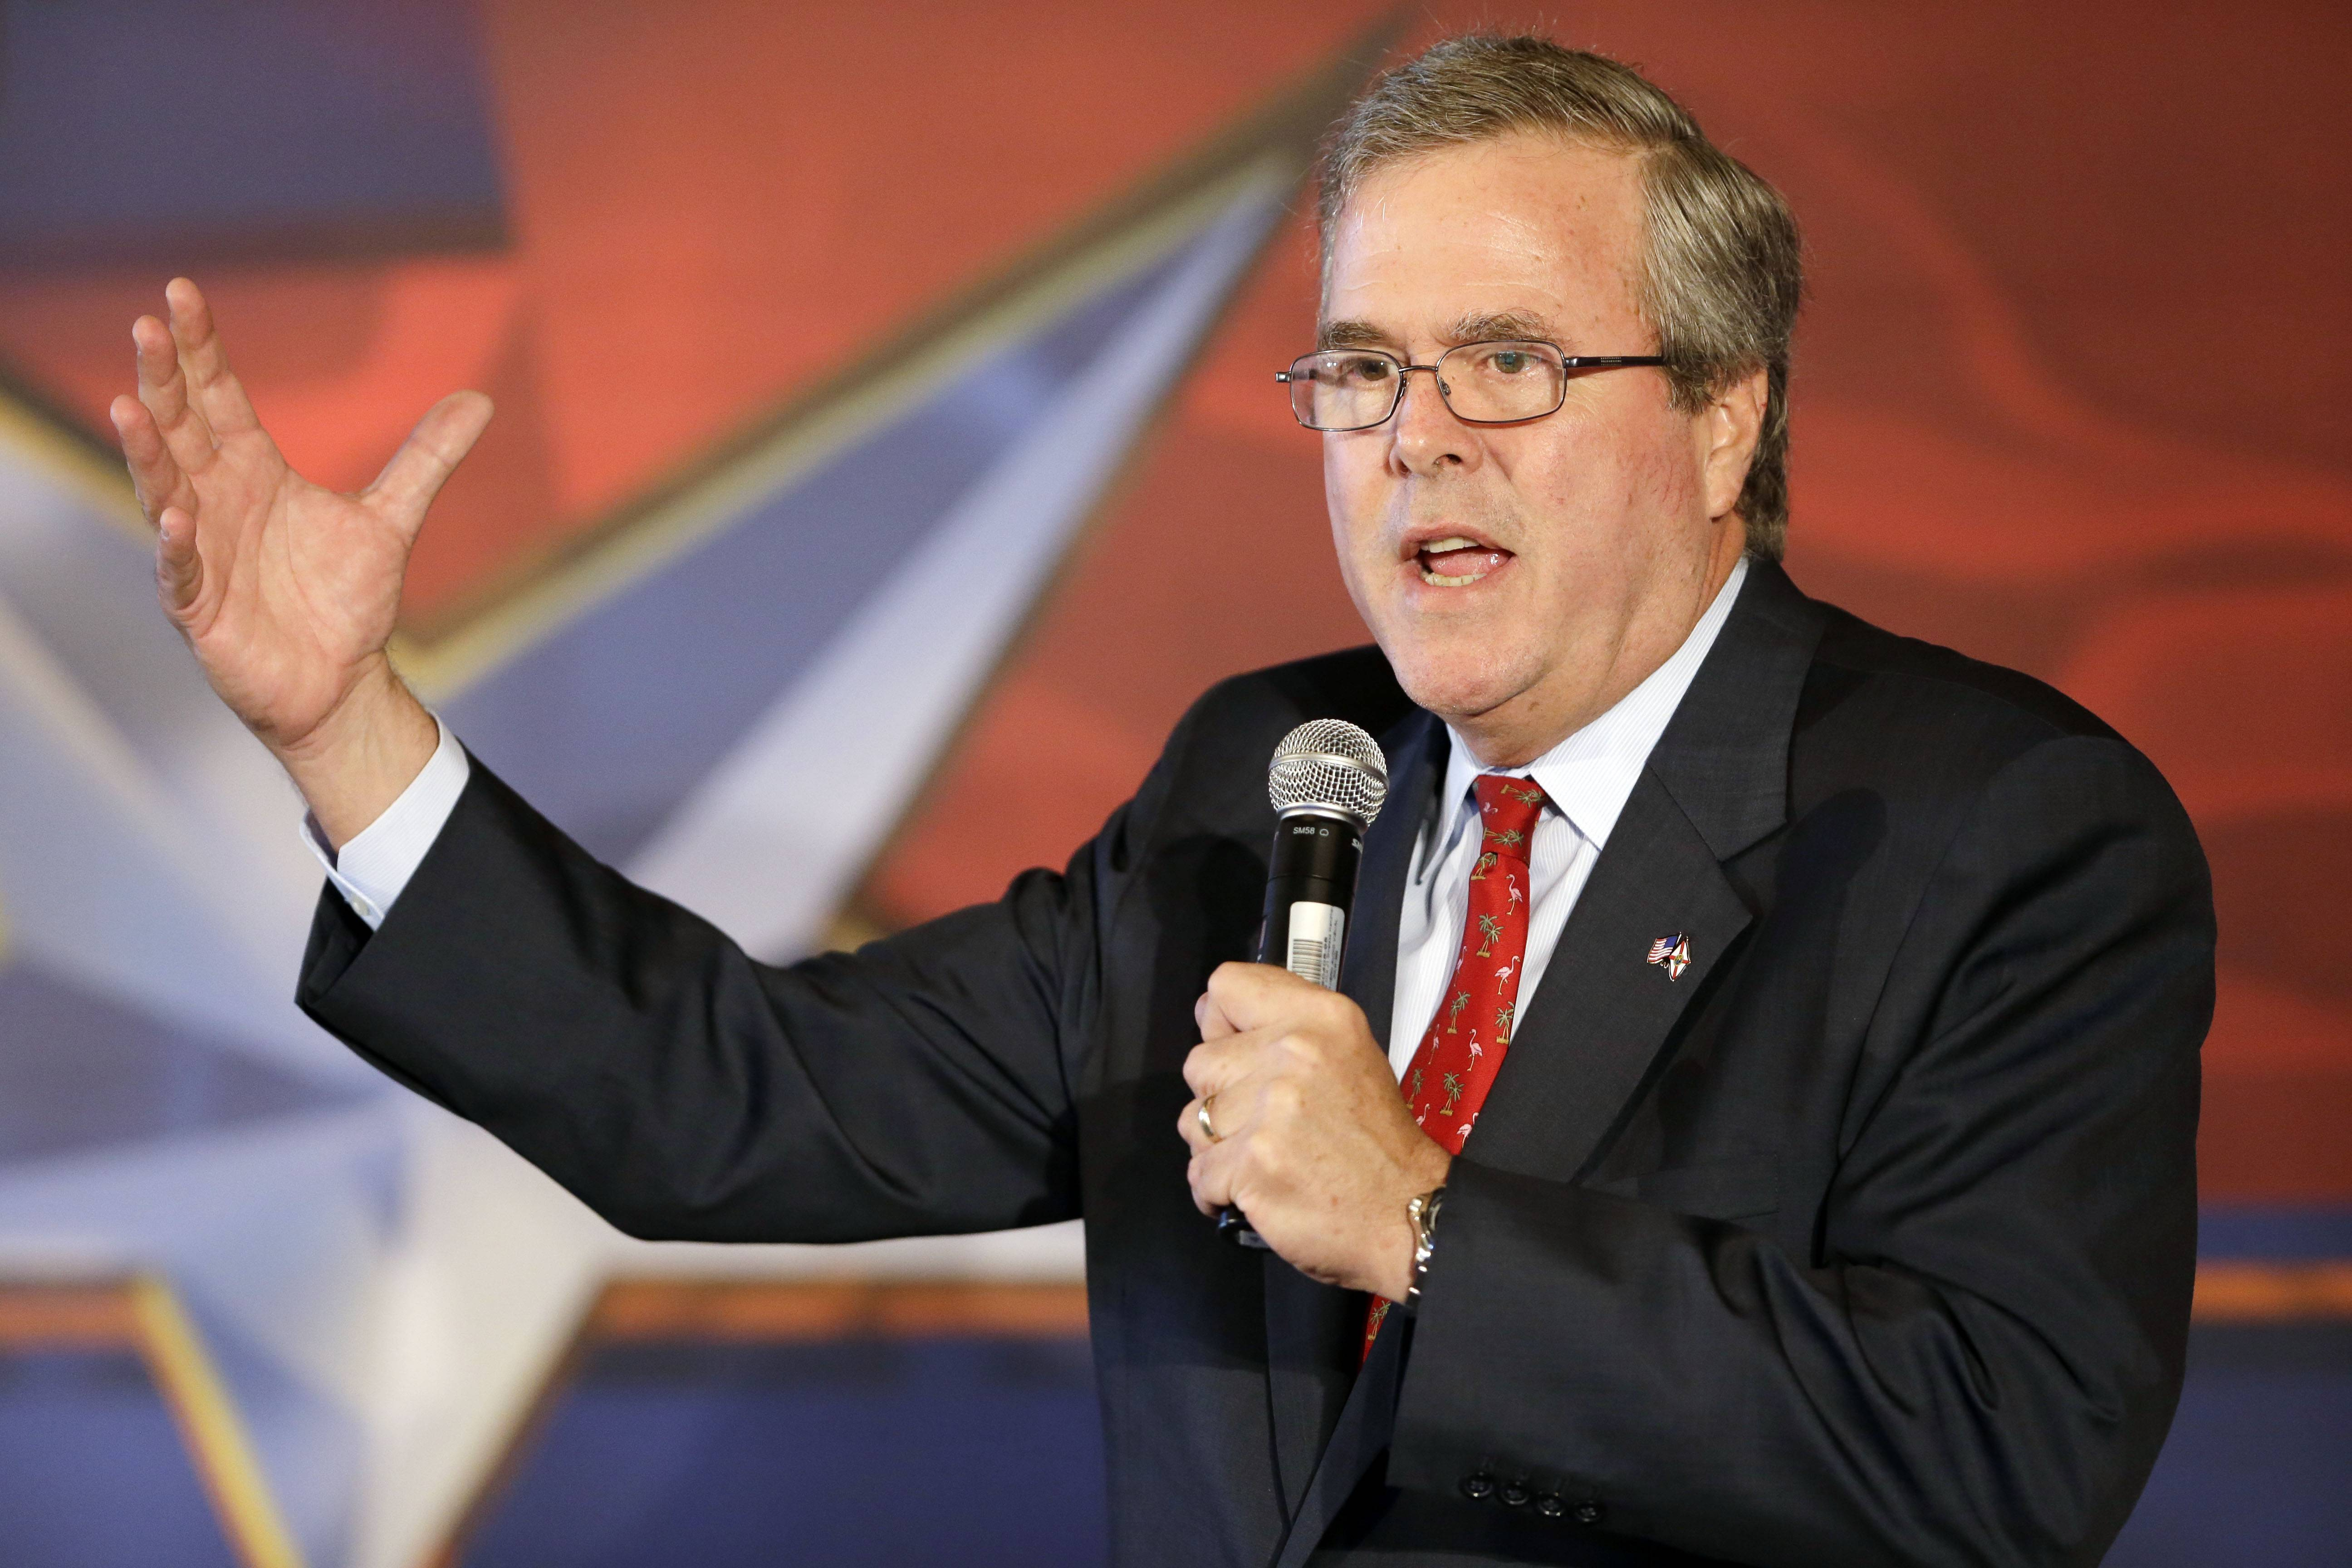 Florida Gov. Jeb Bush